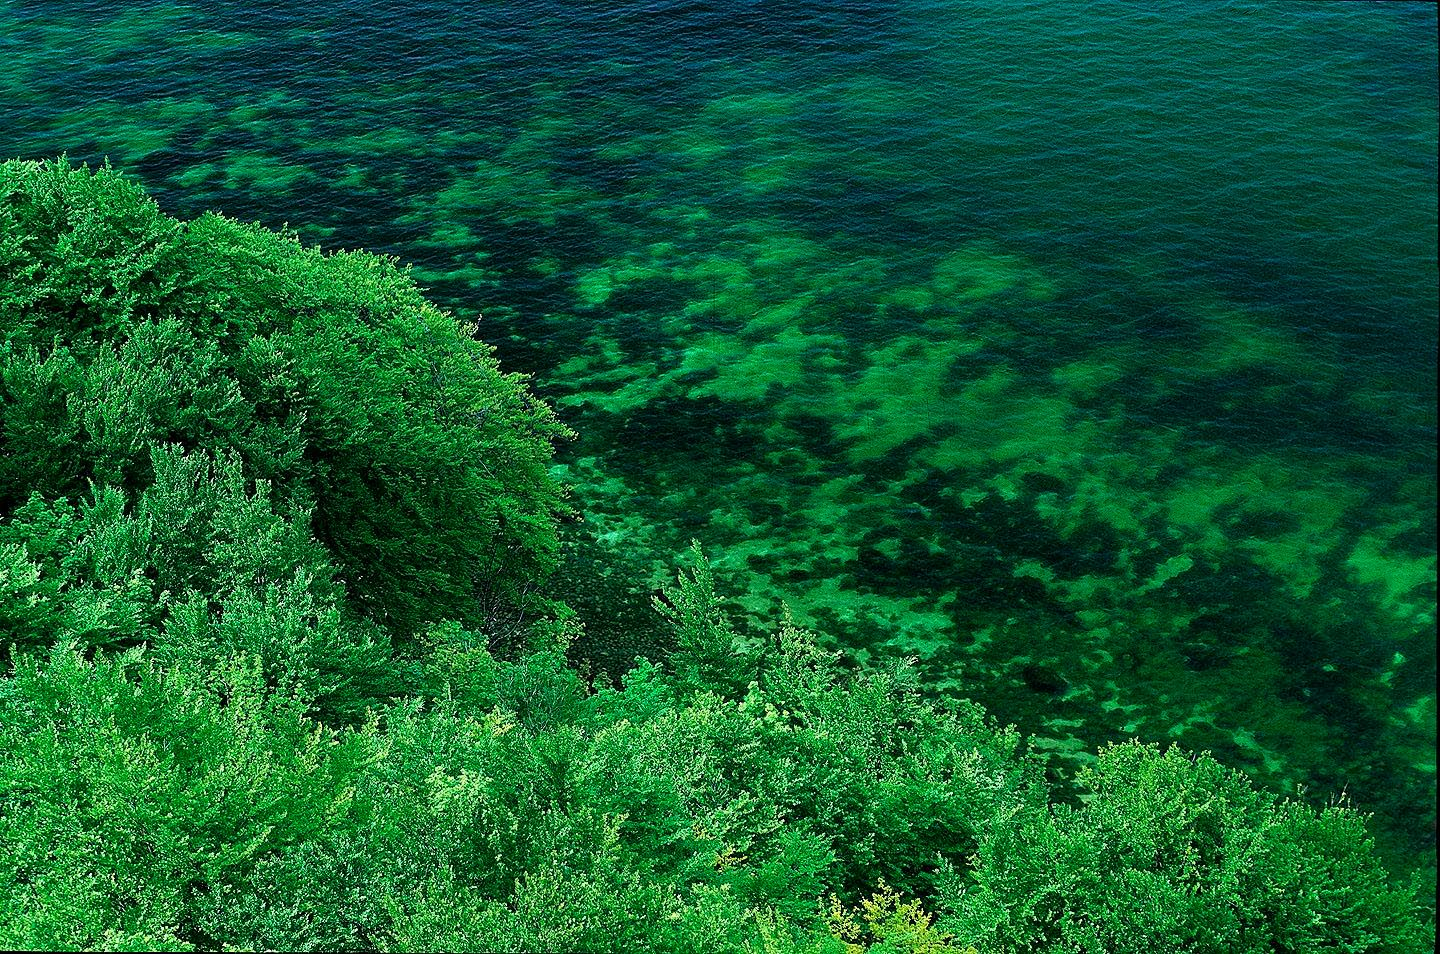 106_green_ocean_and_forest